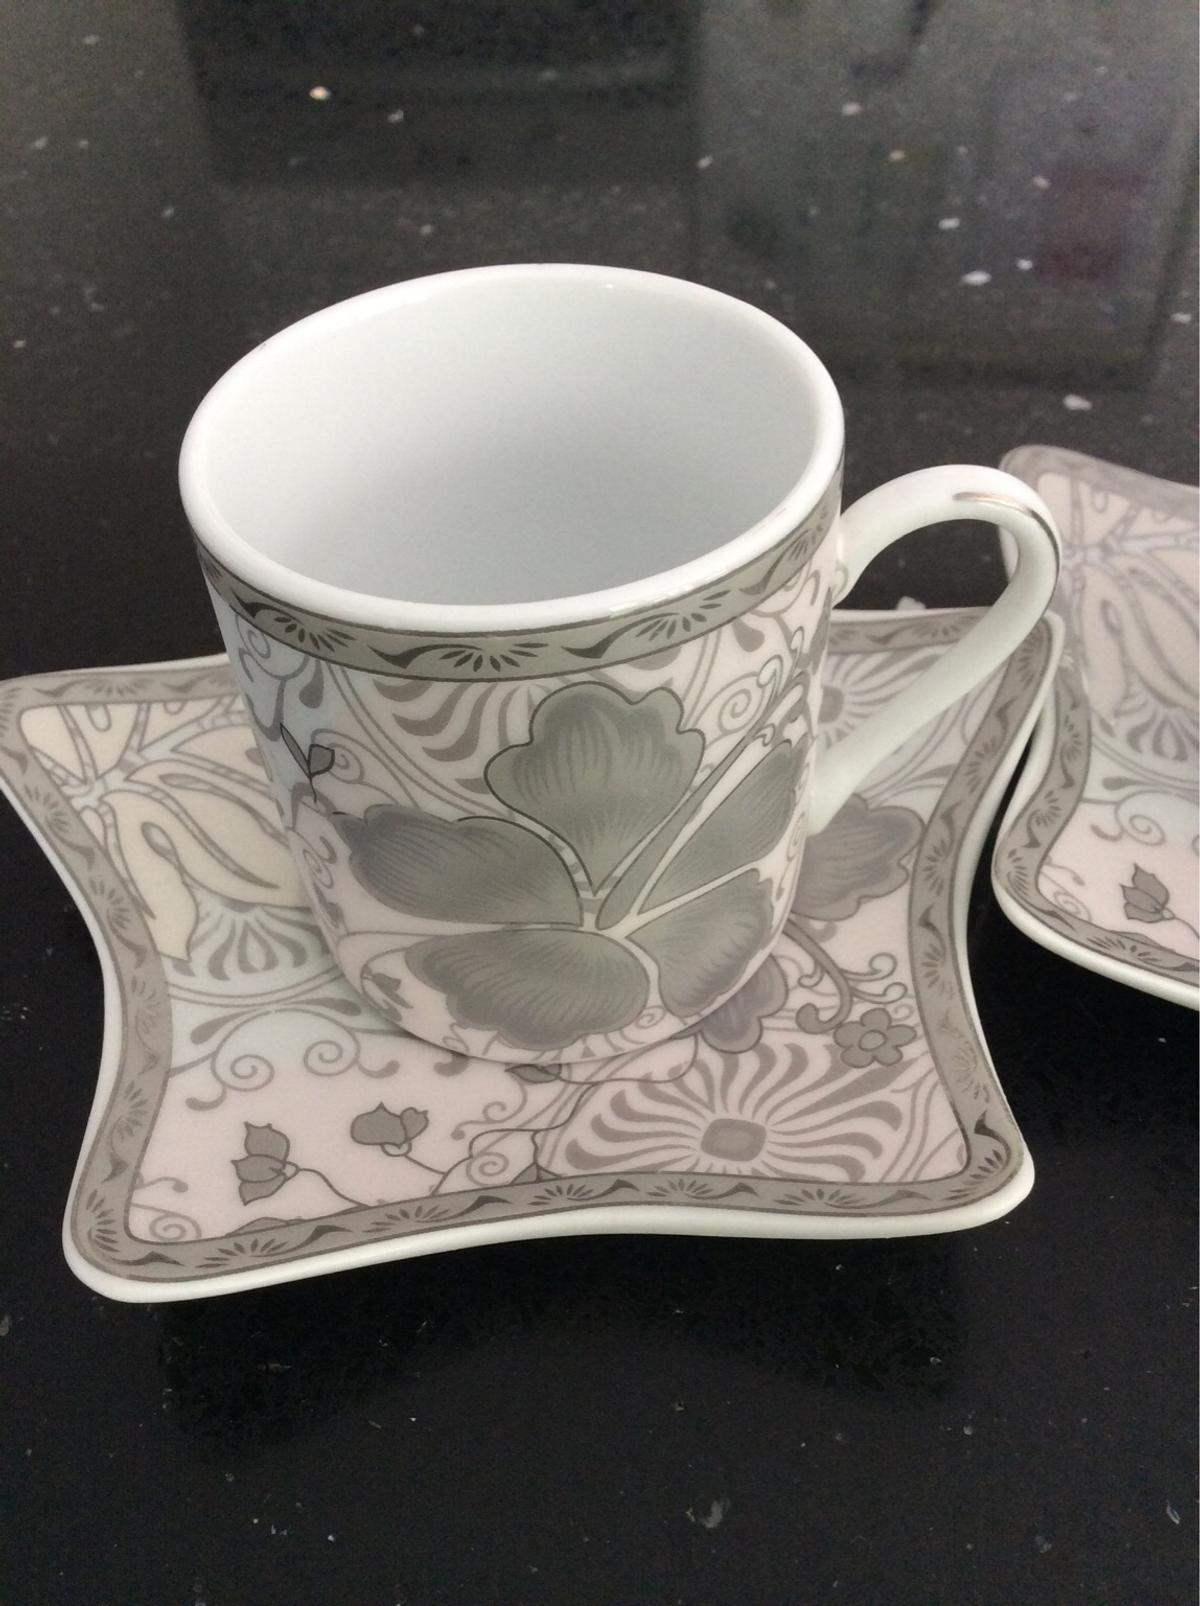 6 cups and saucers used once ,I have 2 sets of this